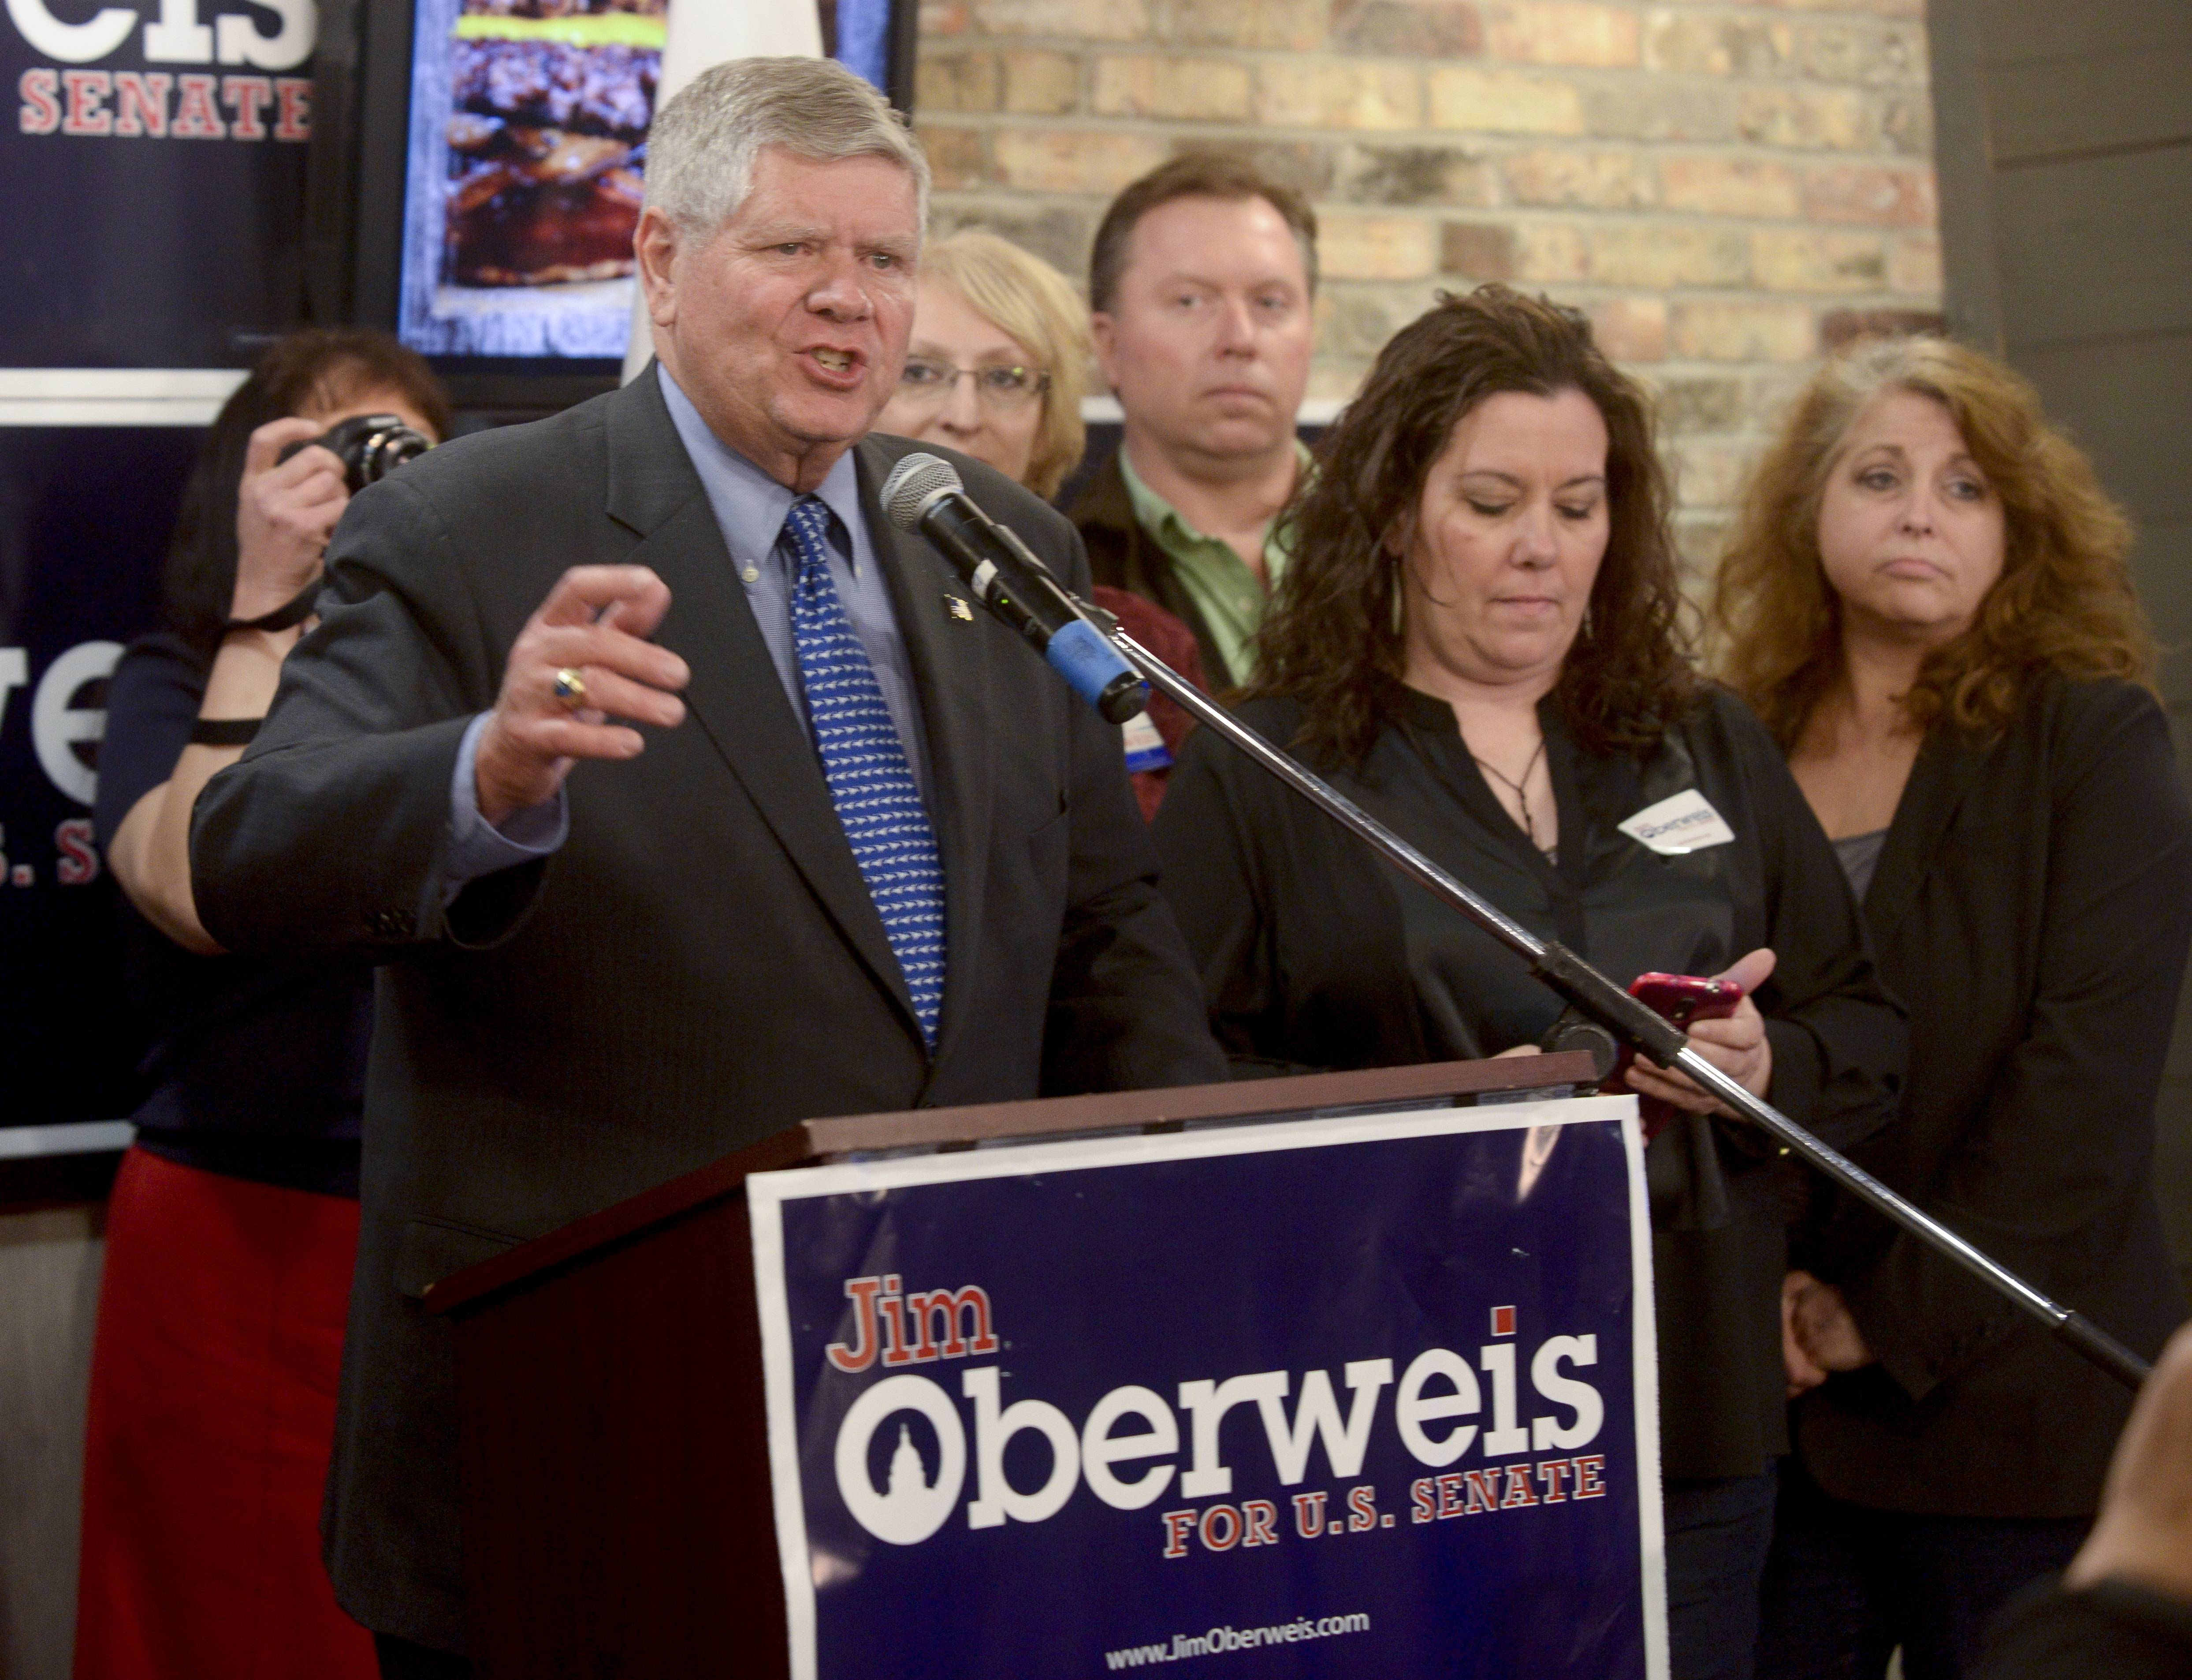 Oberweis sets sights on uphill fight against Durbin